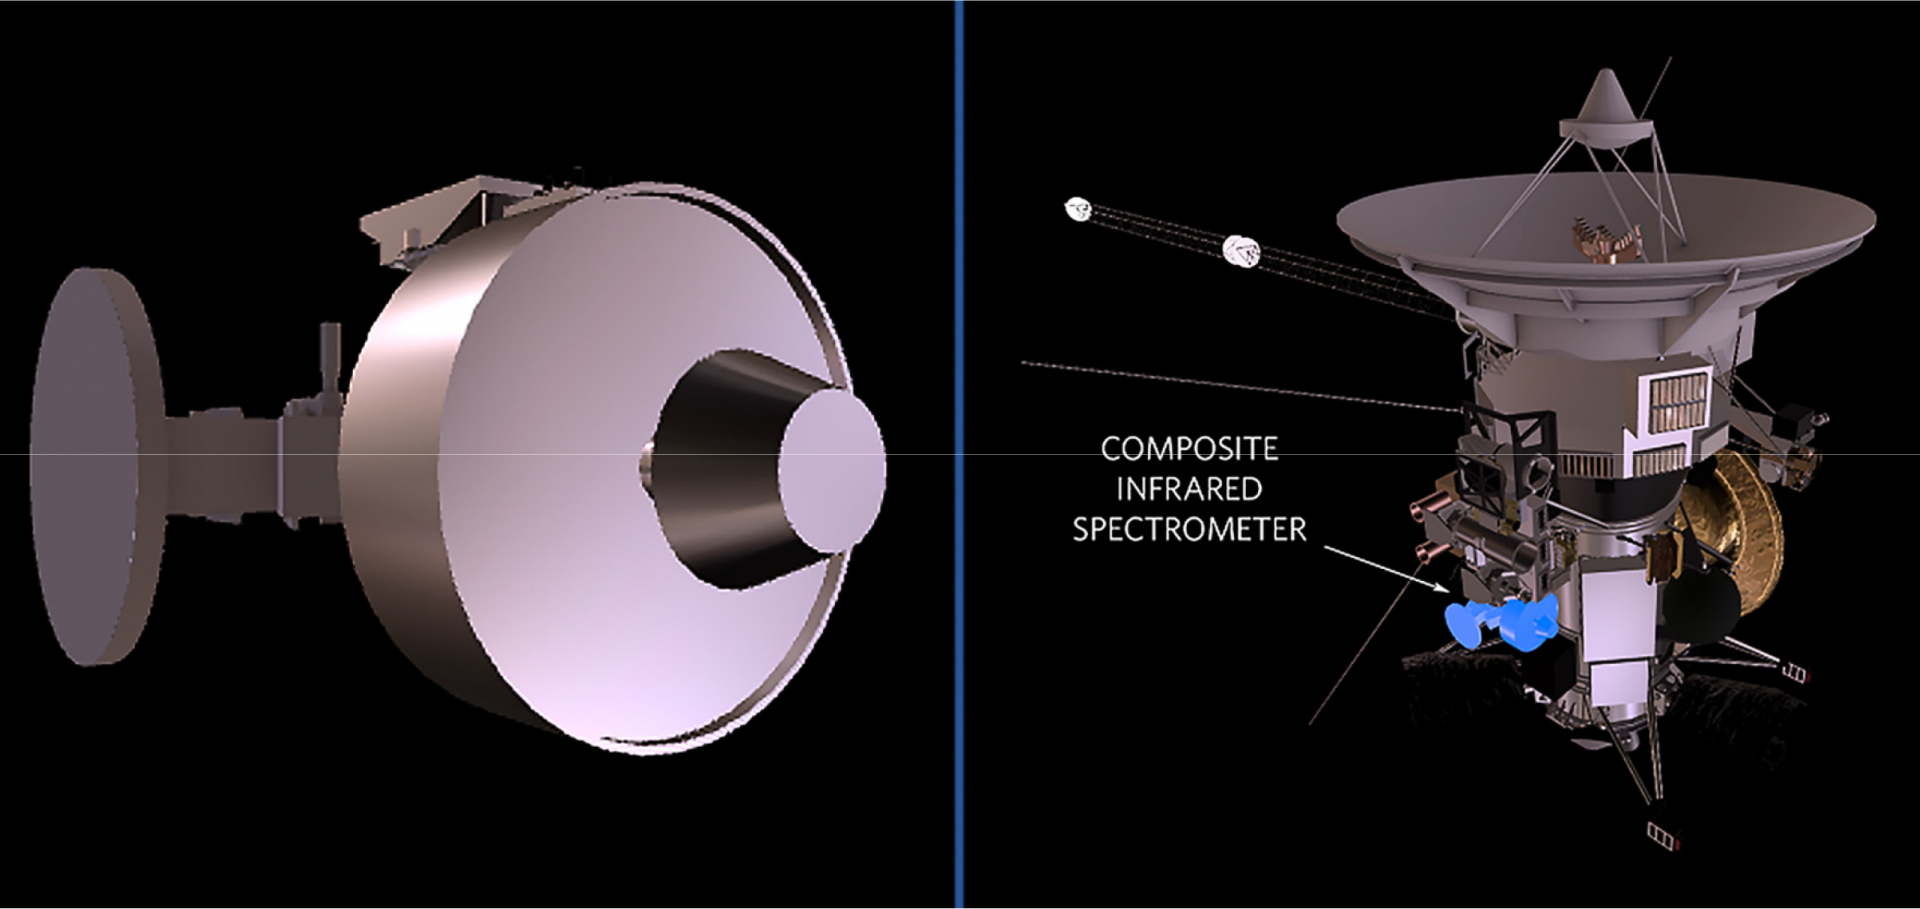 Diagrams of the CIRS instrument and its position on board the Cassini spacecraft